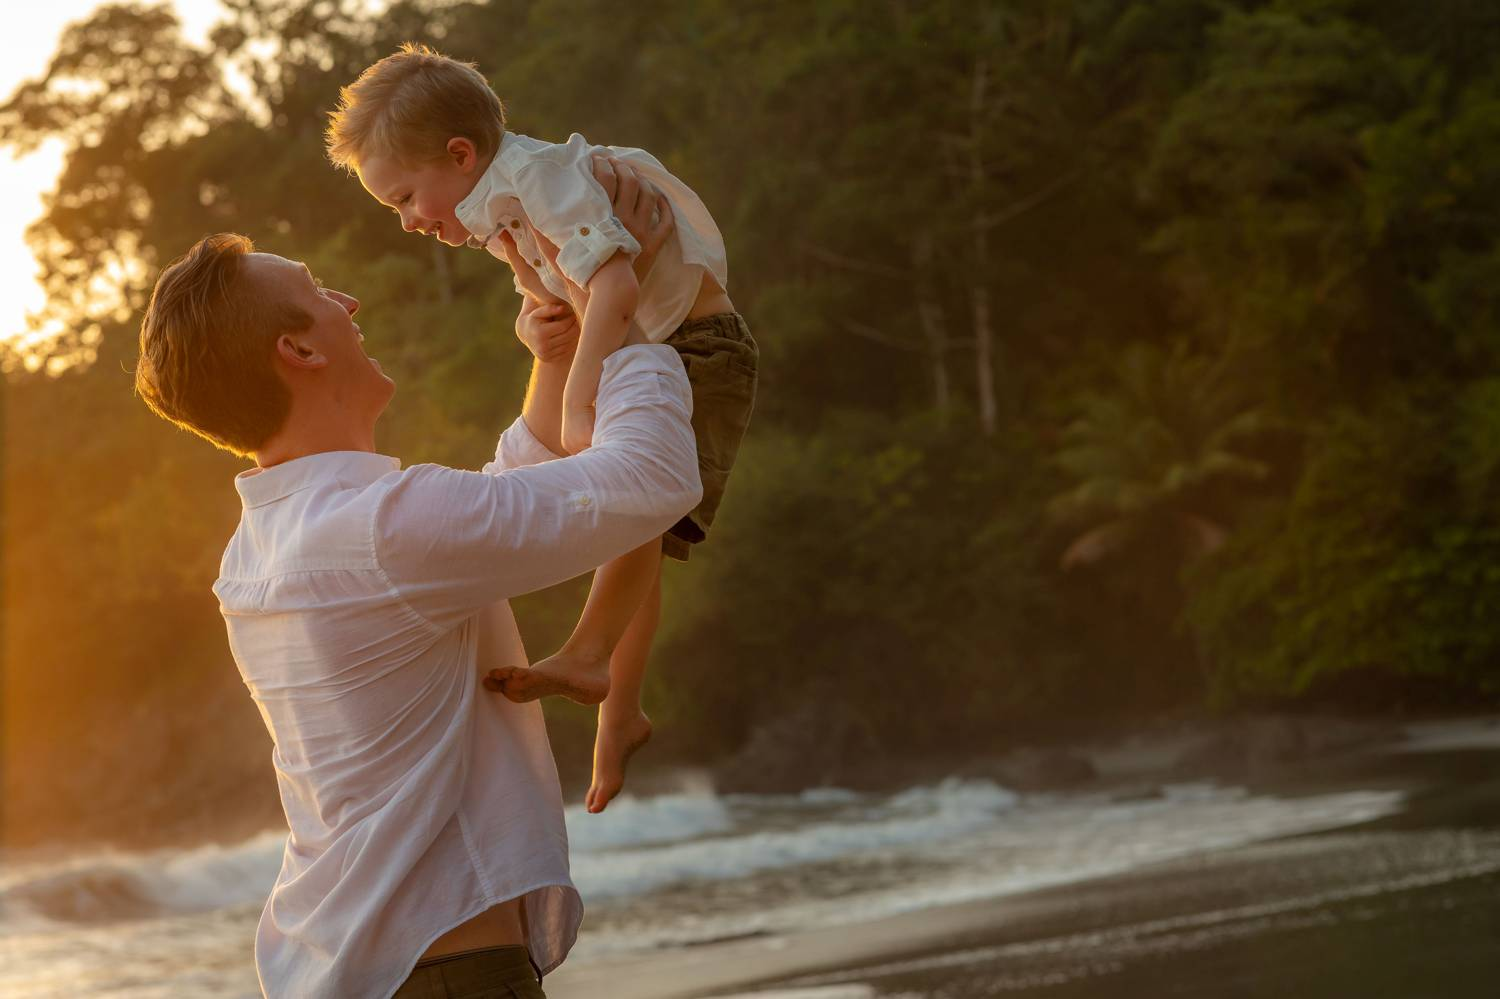 Client Experience: A photo by Kevin Heslin depicts a dad on a beach raising his child playfully toward the sky at sunset.